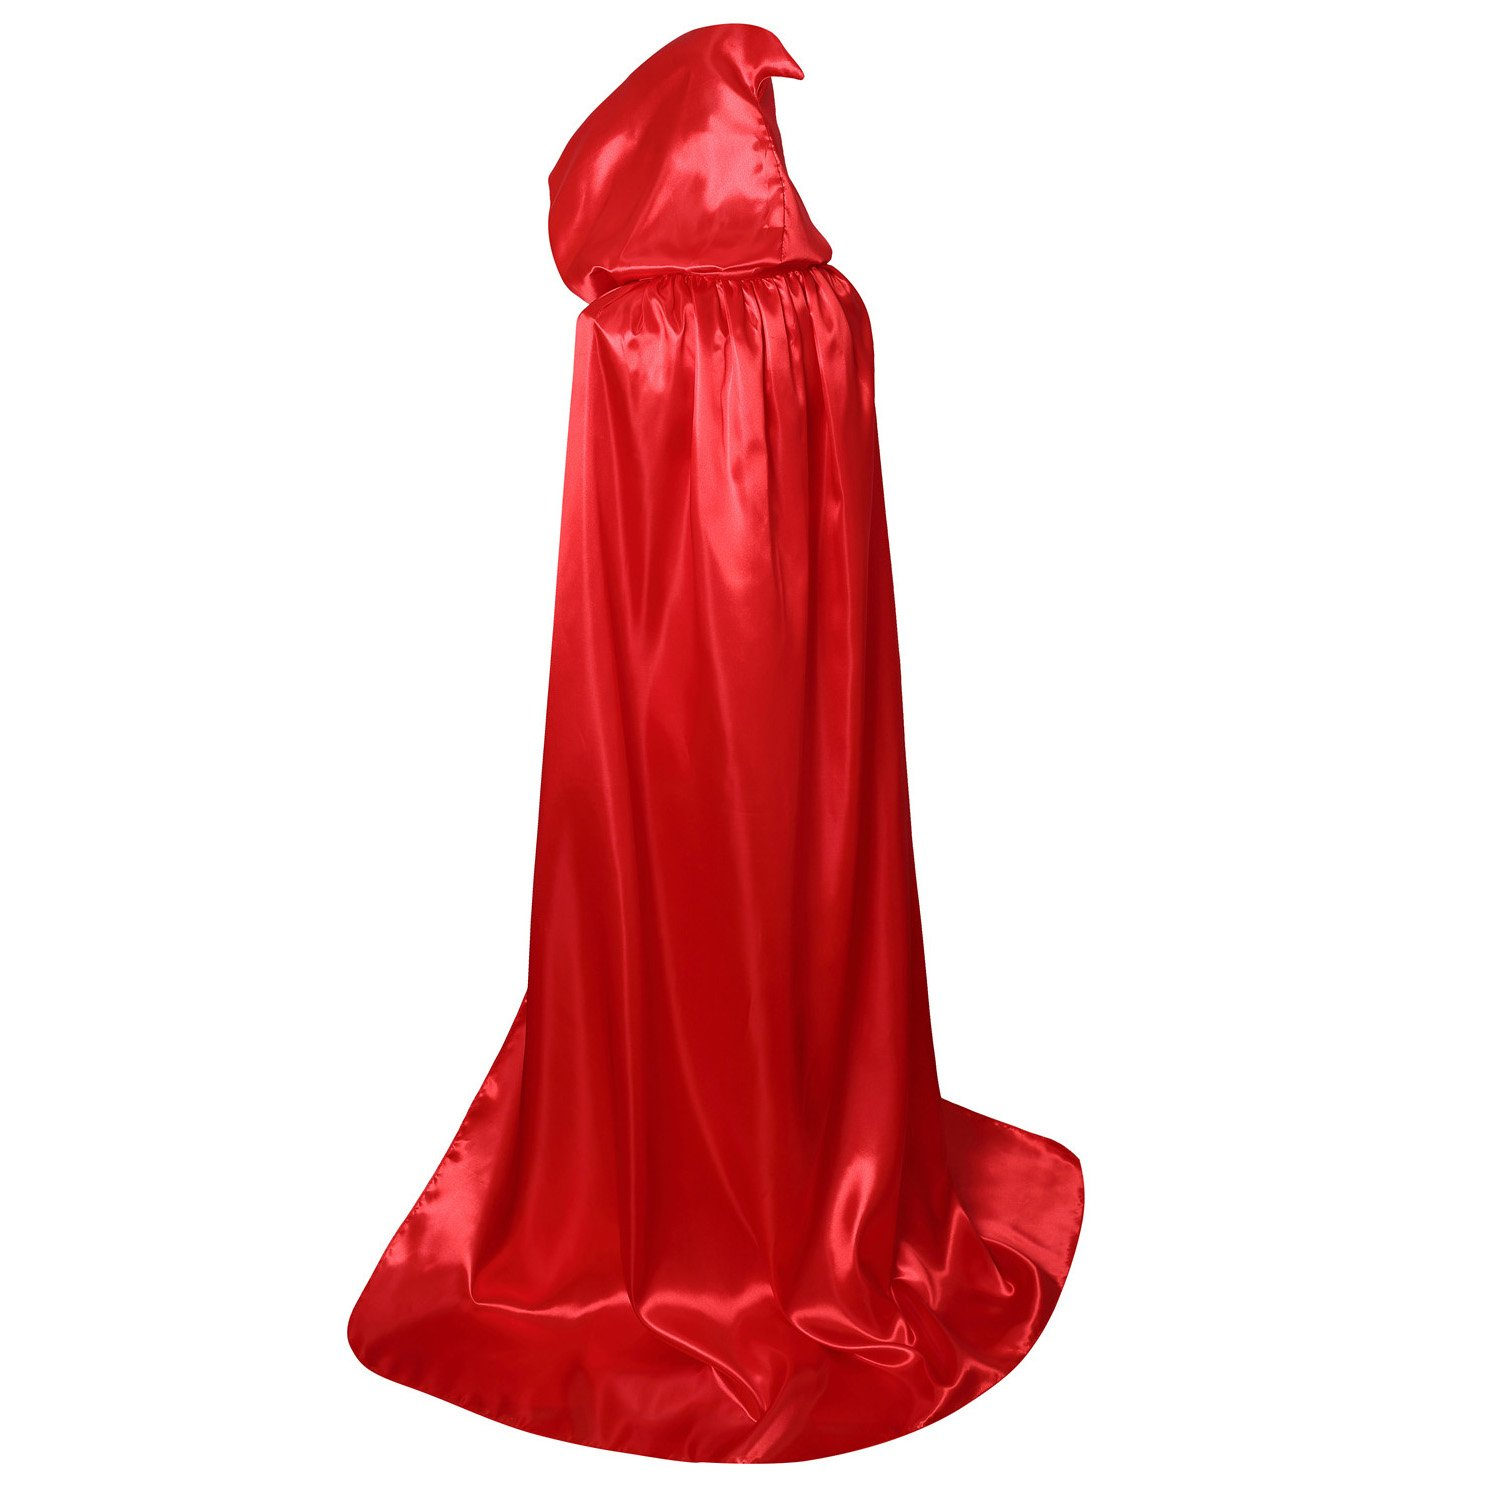 Ourlove Fashion Unisex Hooded Cloak Coat Witch Robe Cape Long Halloween Cosplay Party Cloak59